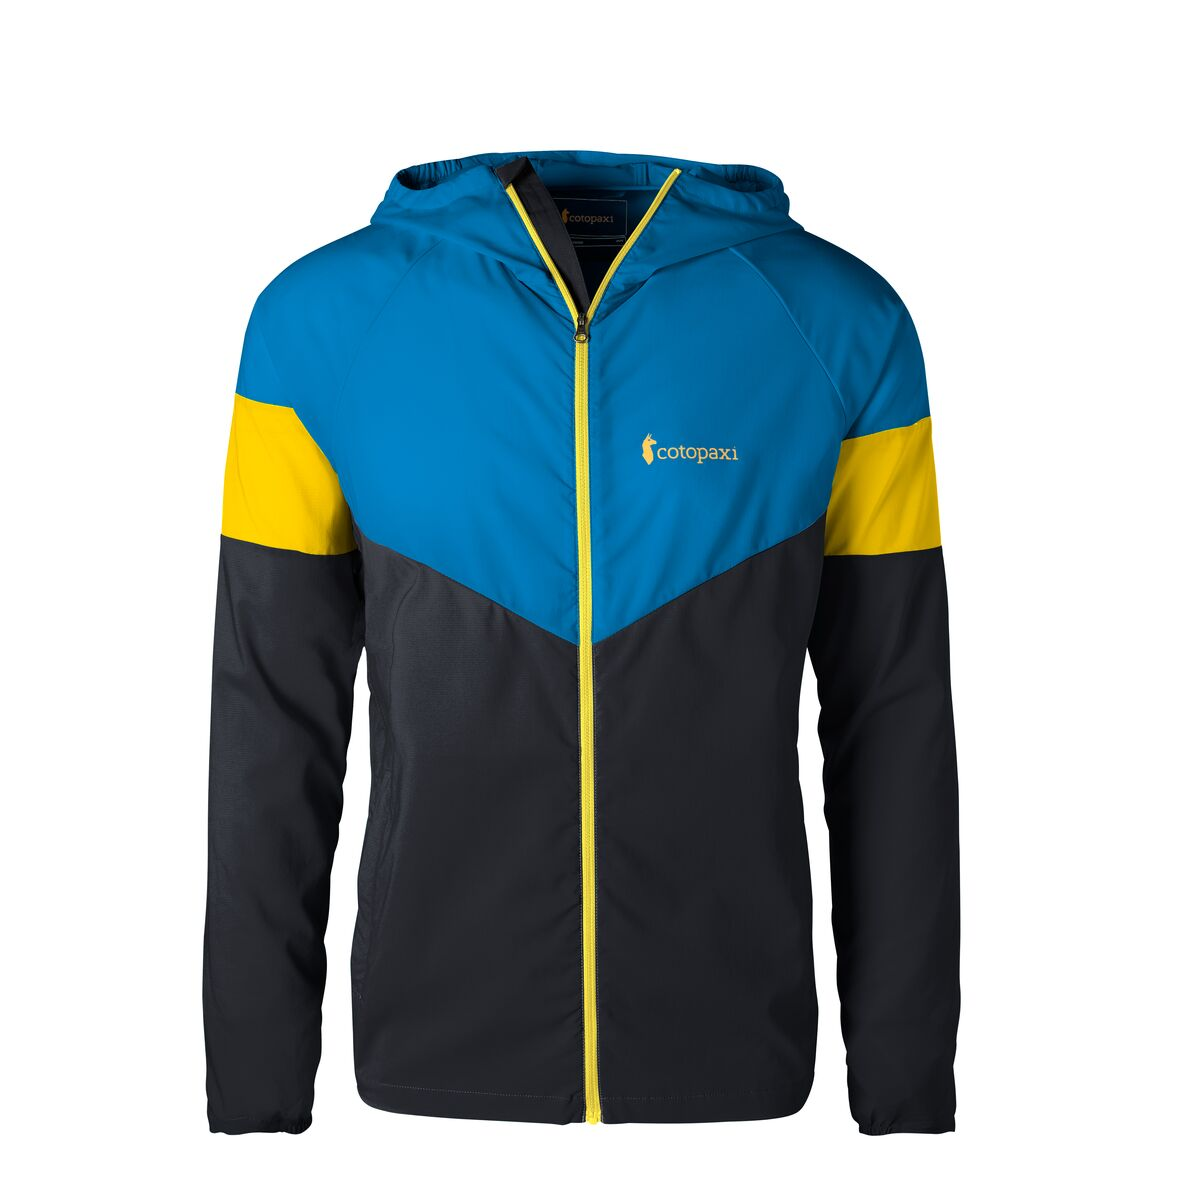 Cotopaxi-Palmas Windshell - Men's